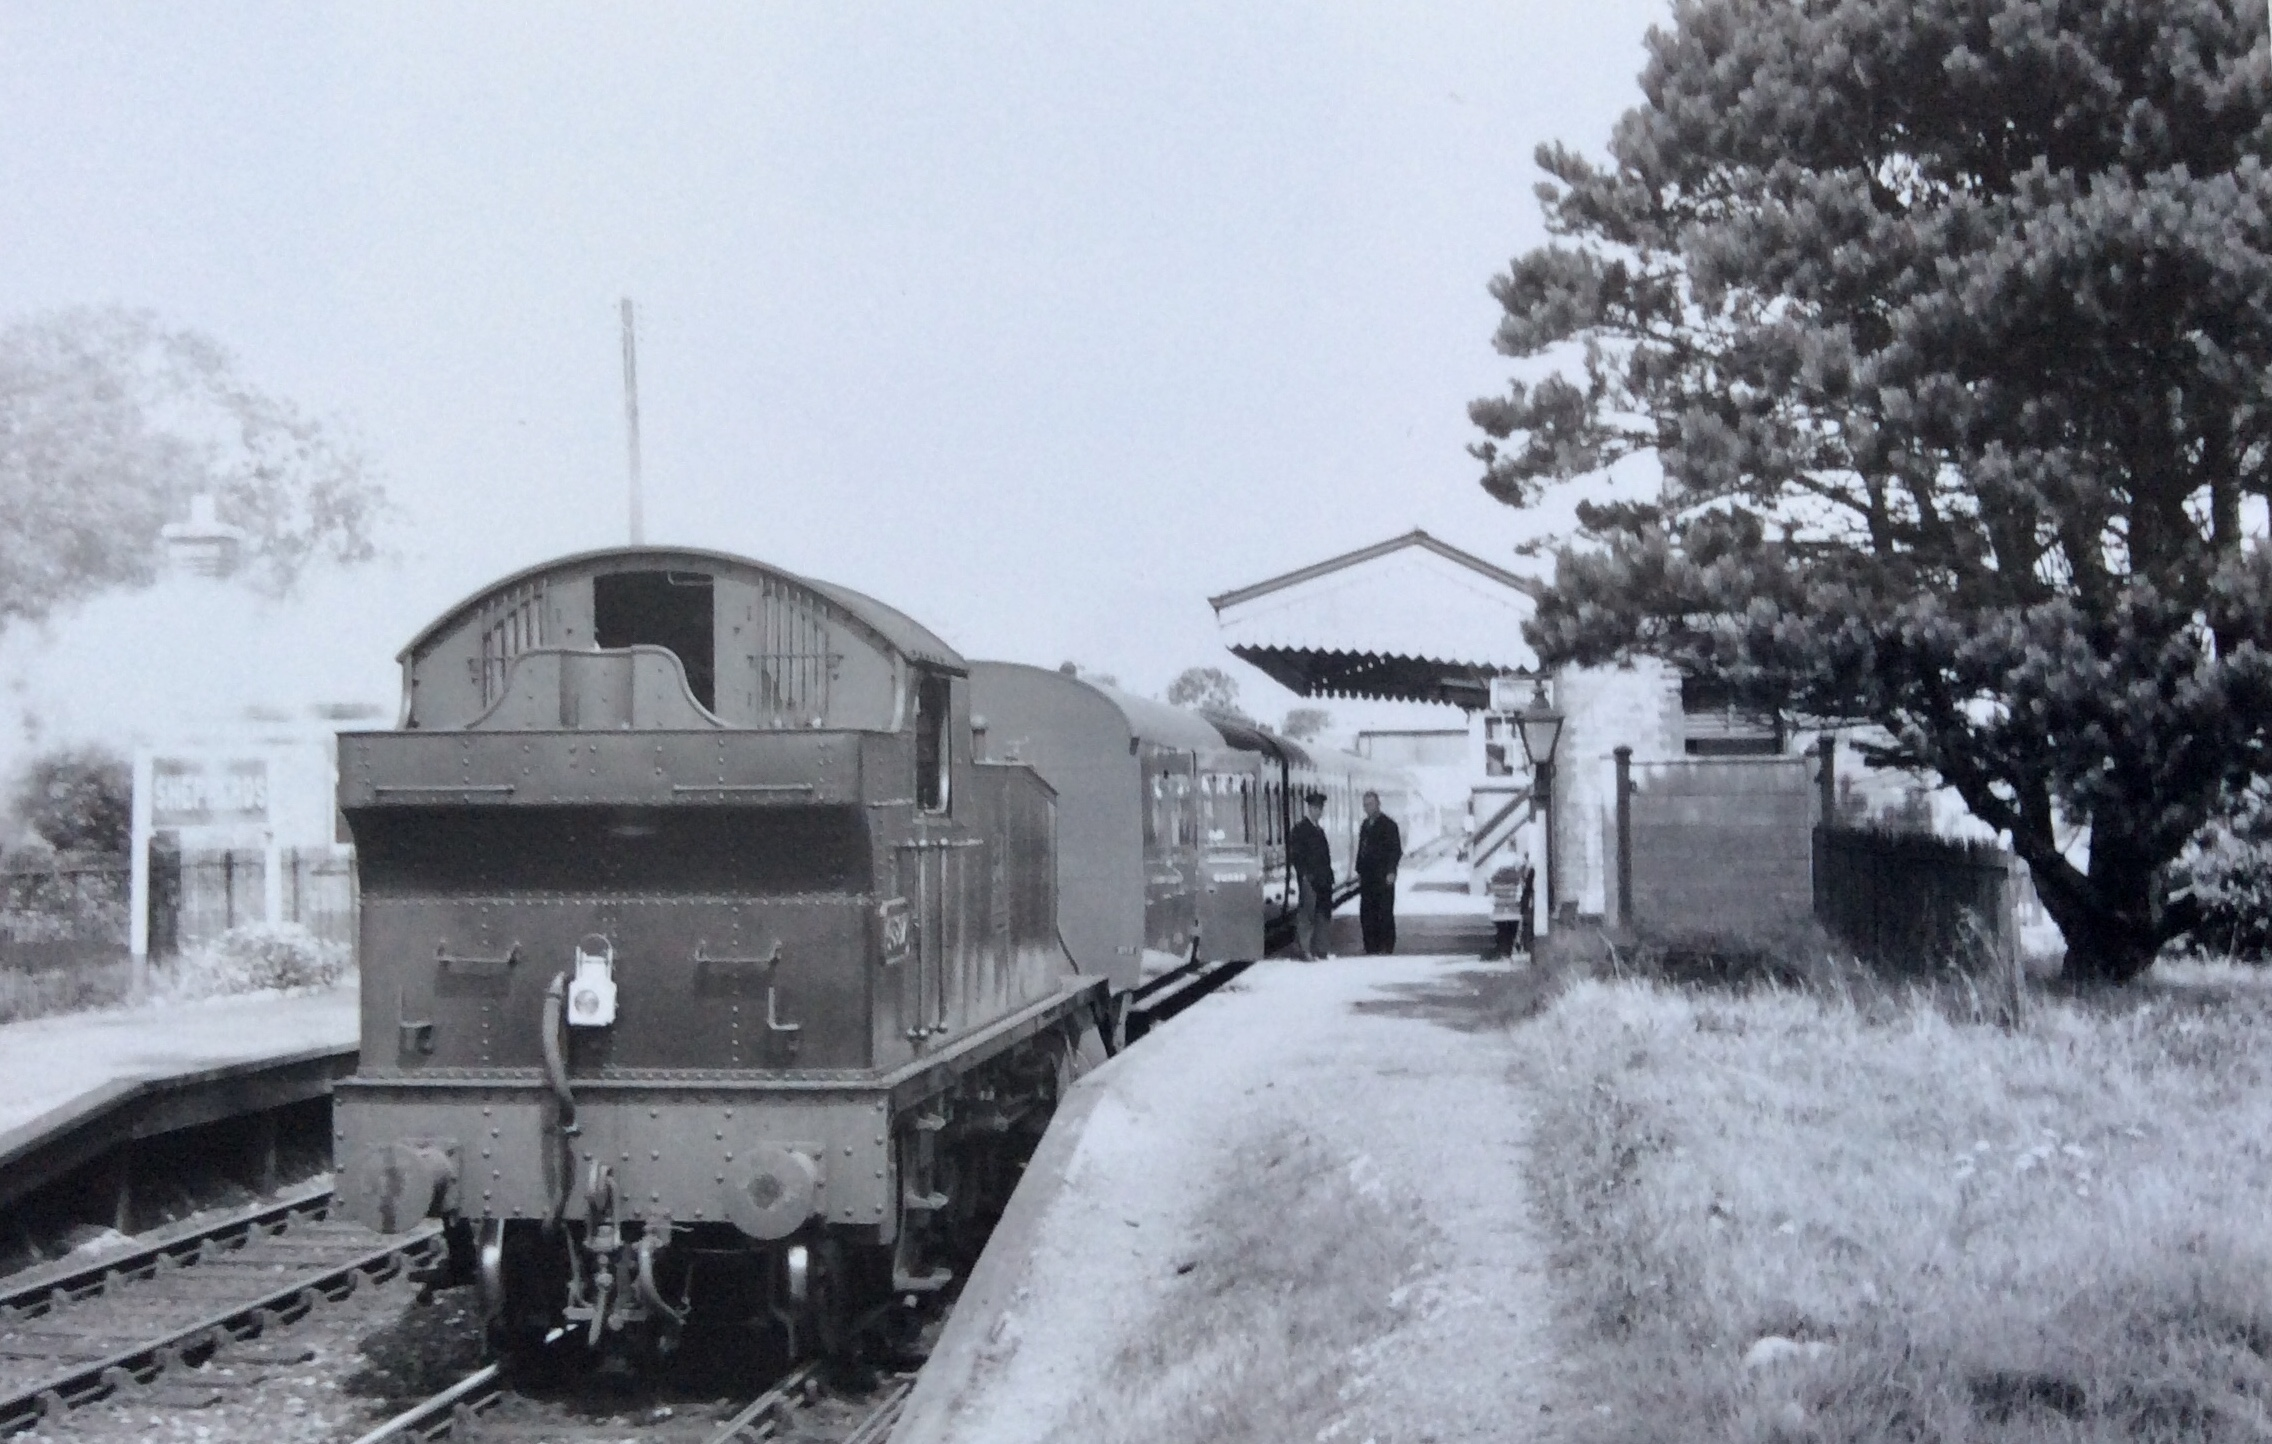 Shepherds Station - Date Unknown